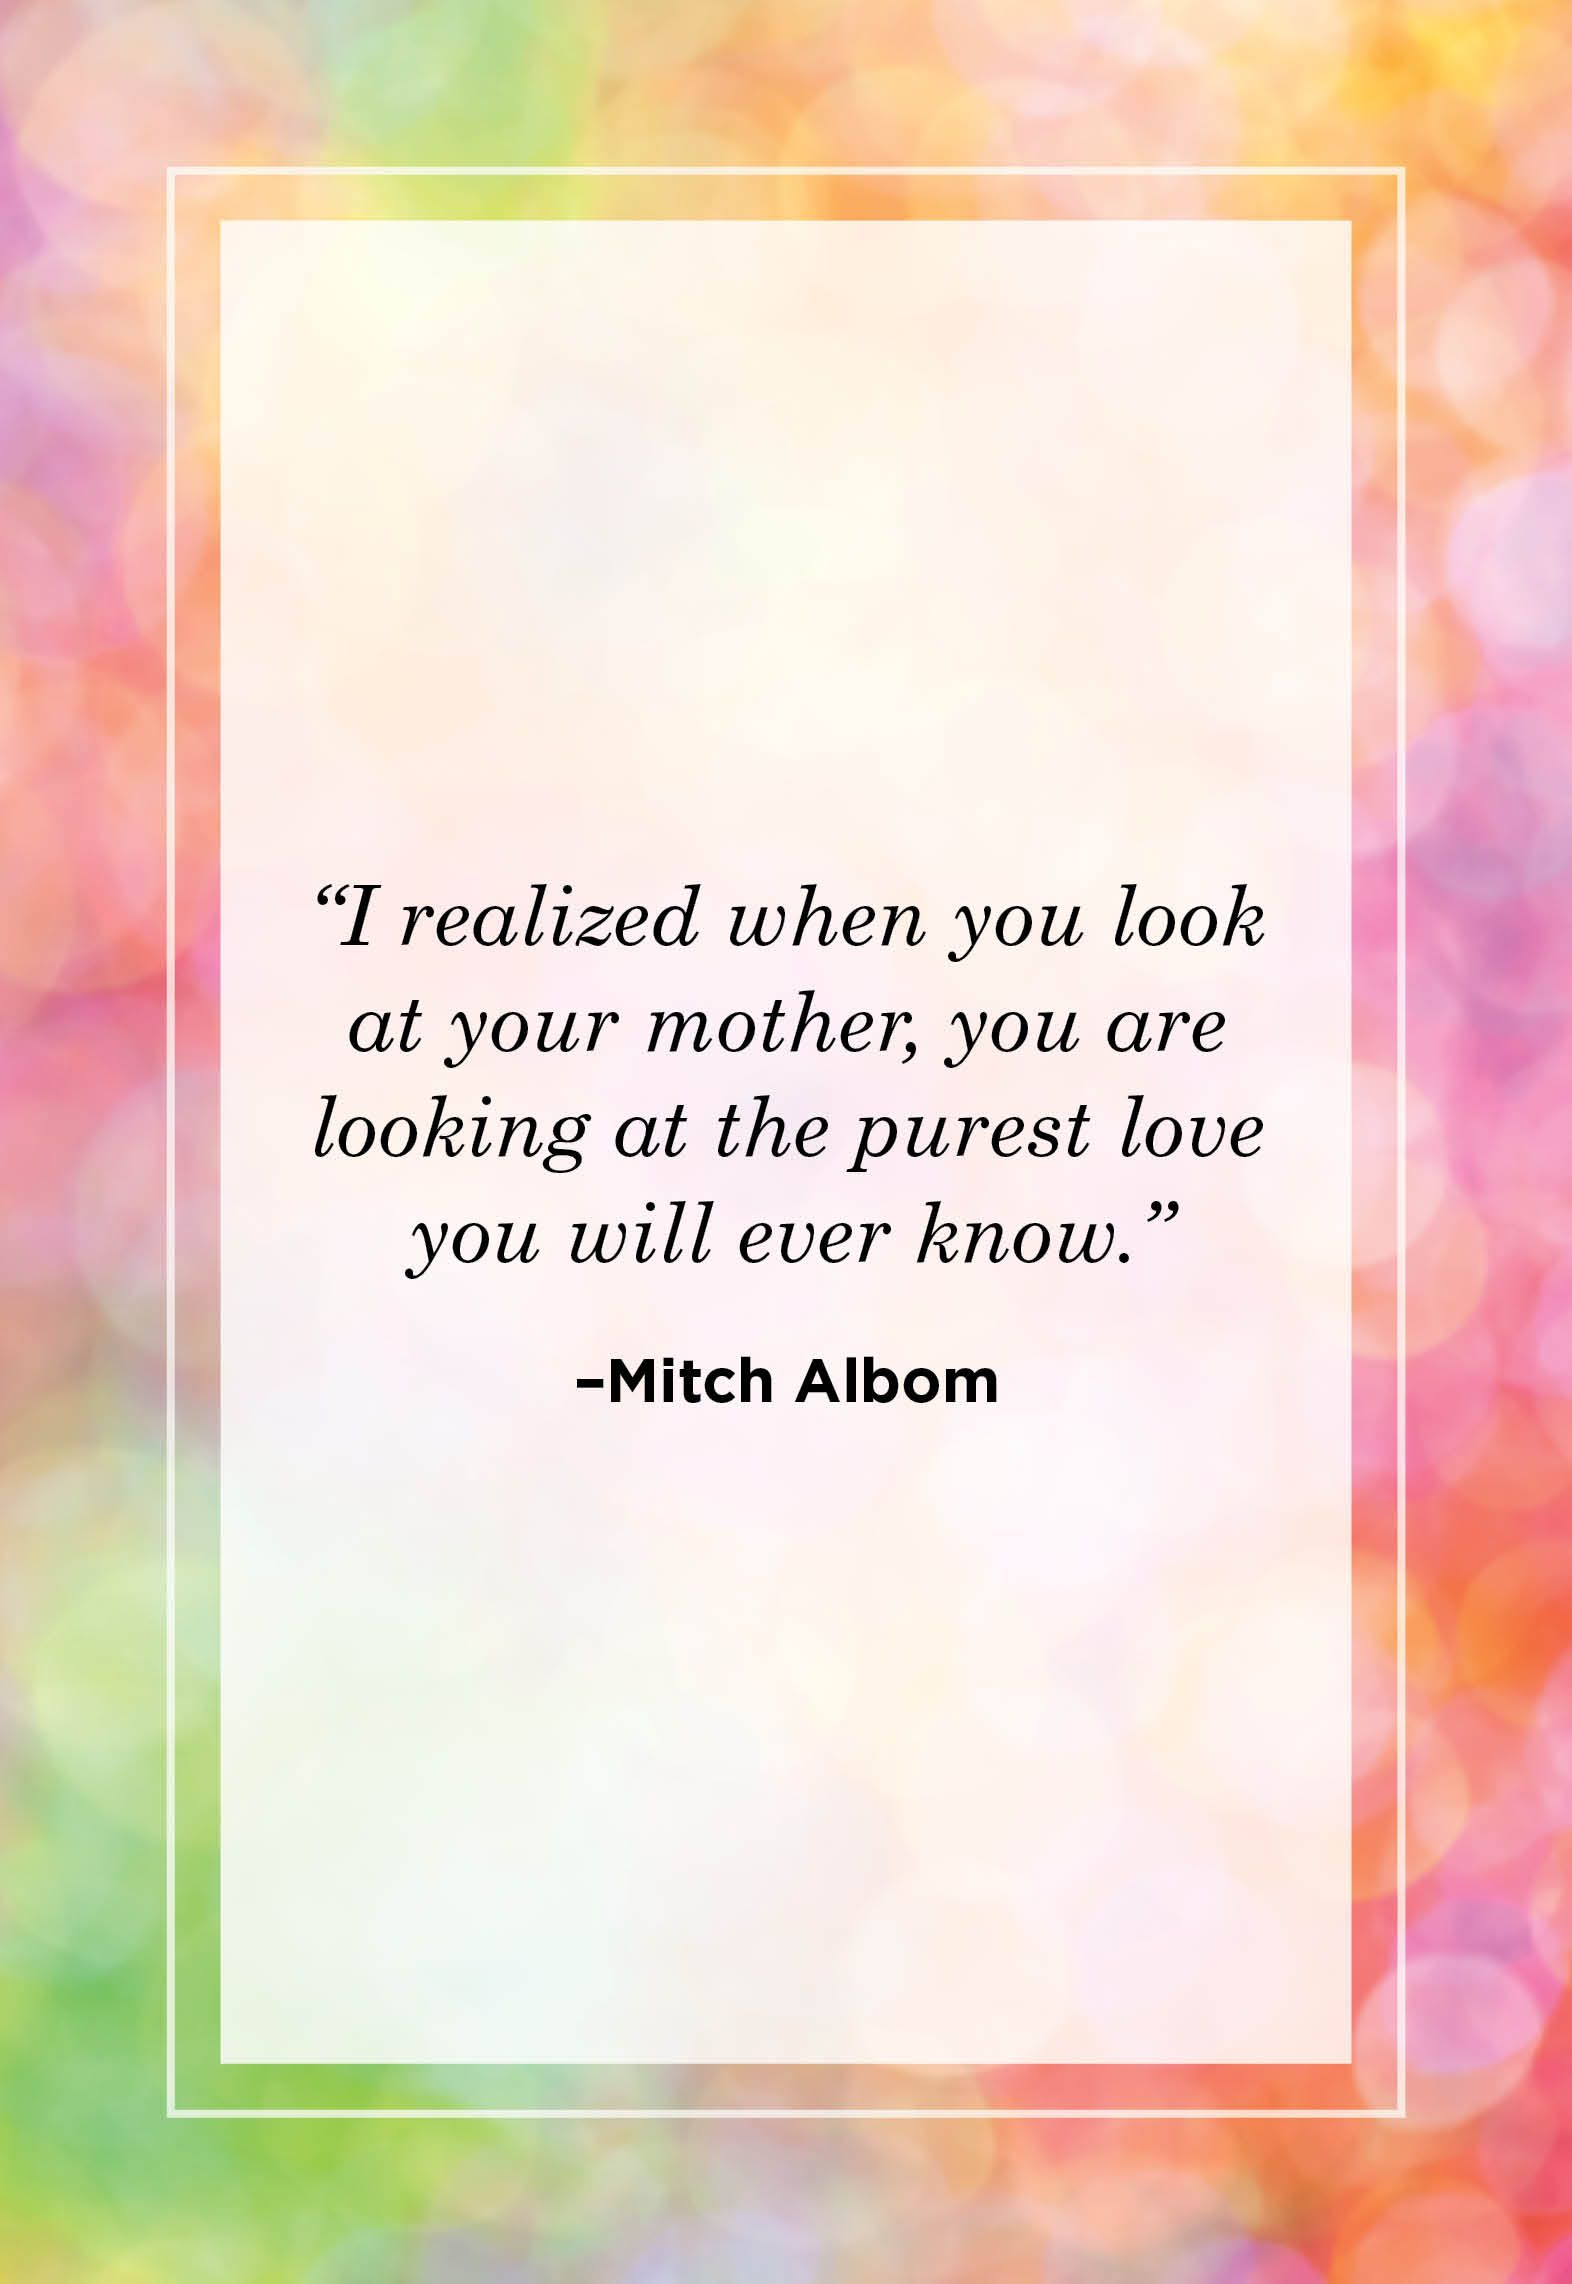 Astonishing 20 Birthday Quotes To Celebrate Mom Messages From Daughter And Son Funny Birthday Cards Online Fluifree Goldxyz